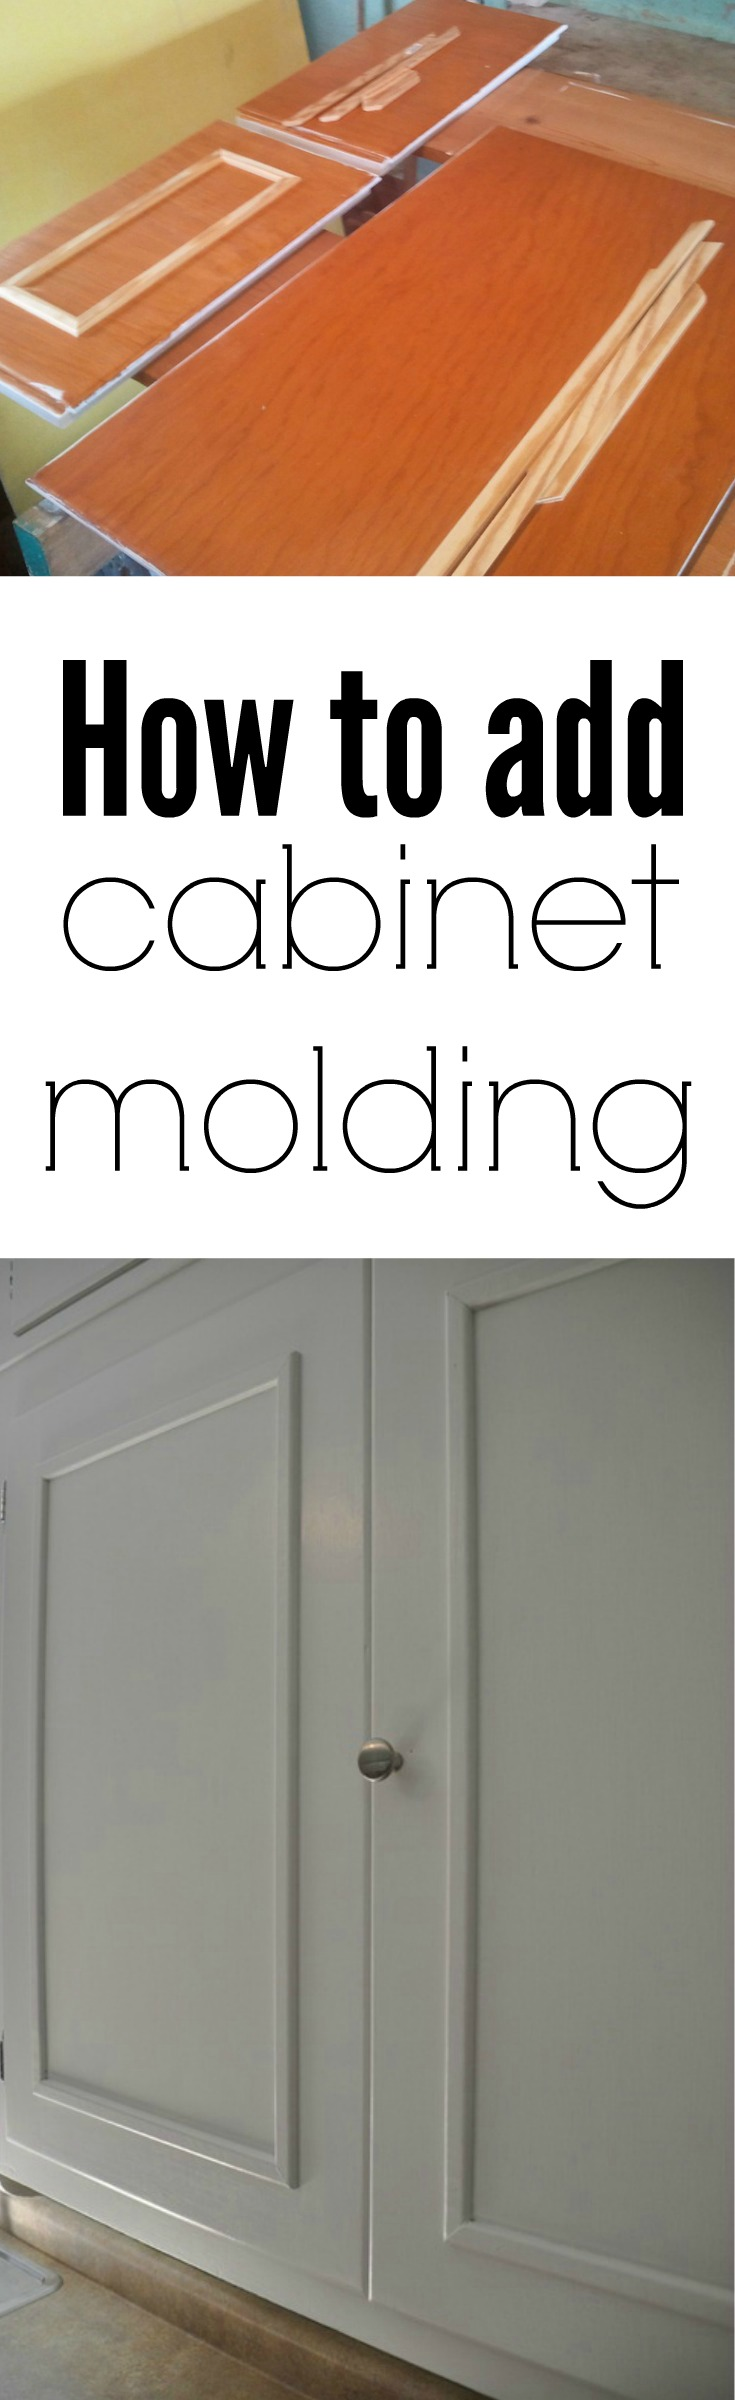 How To Add Cabinet Molding Decor And The Dog